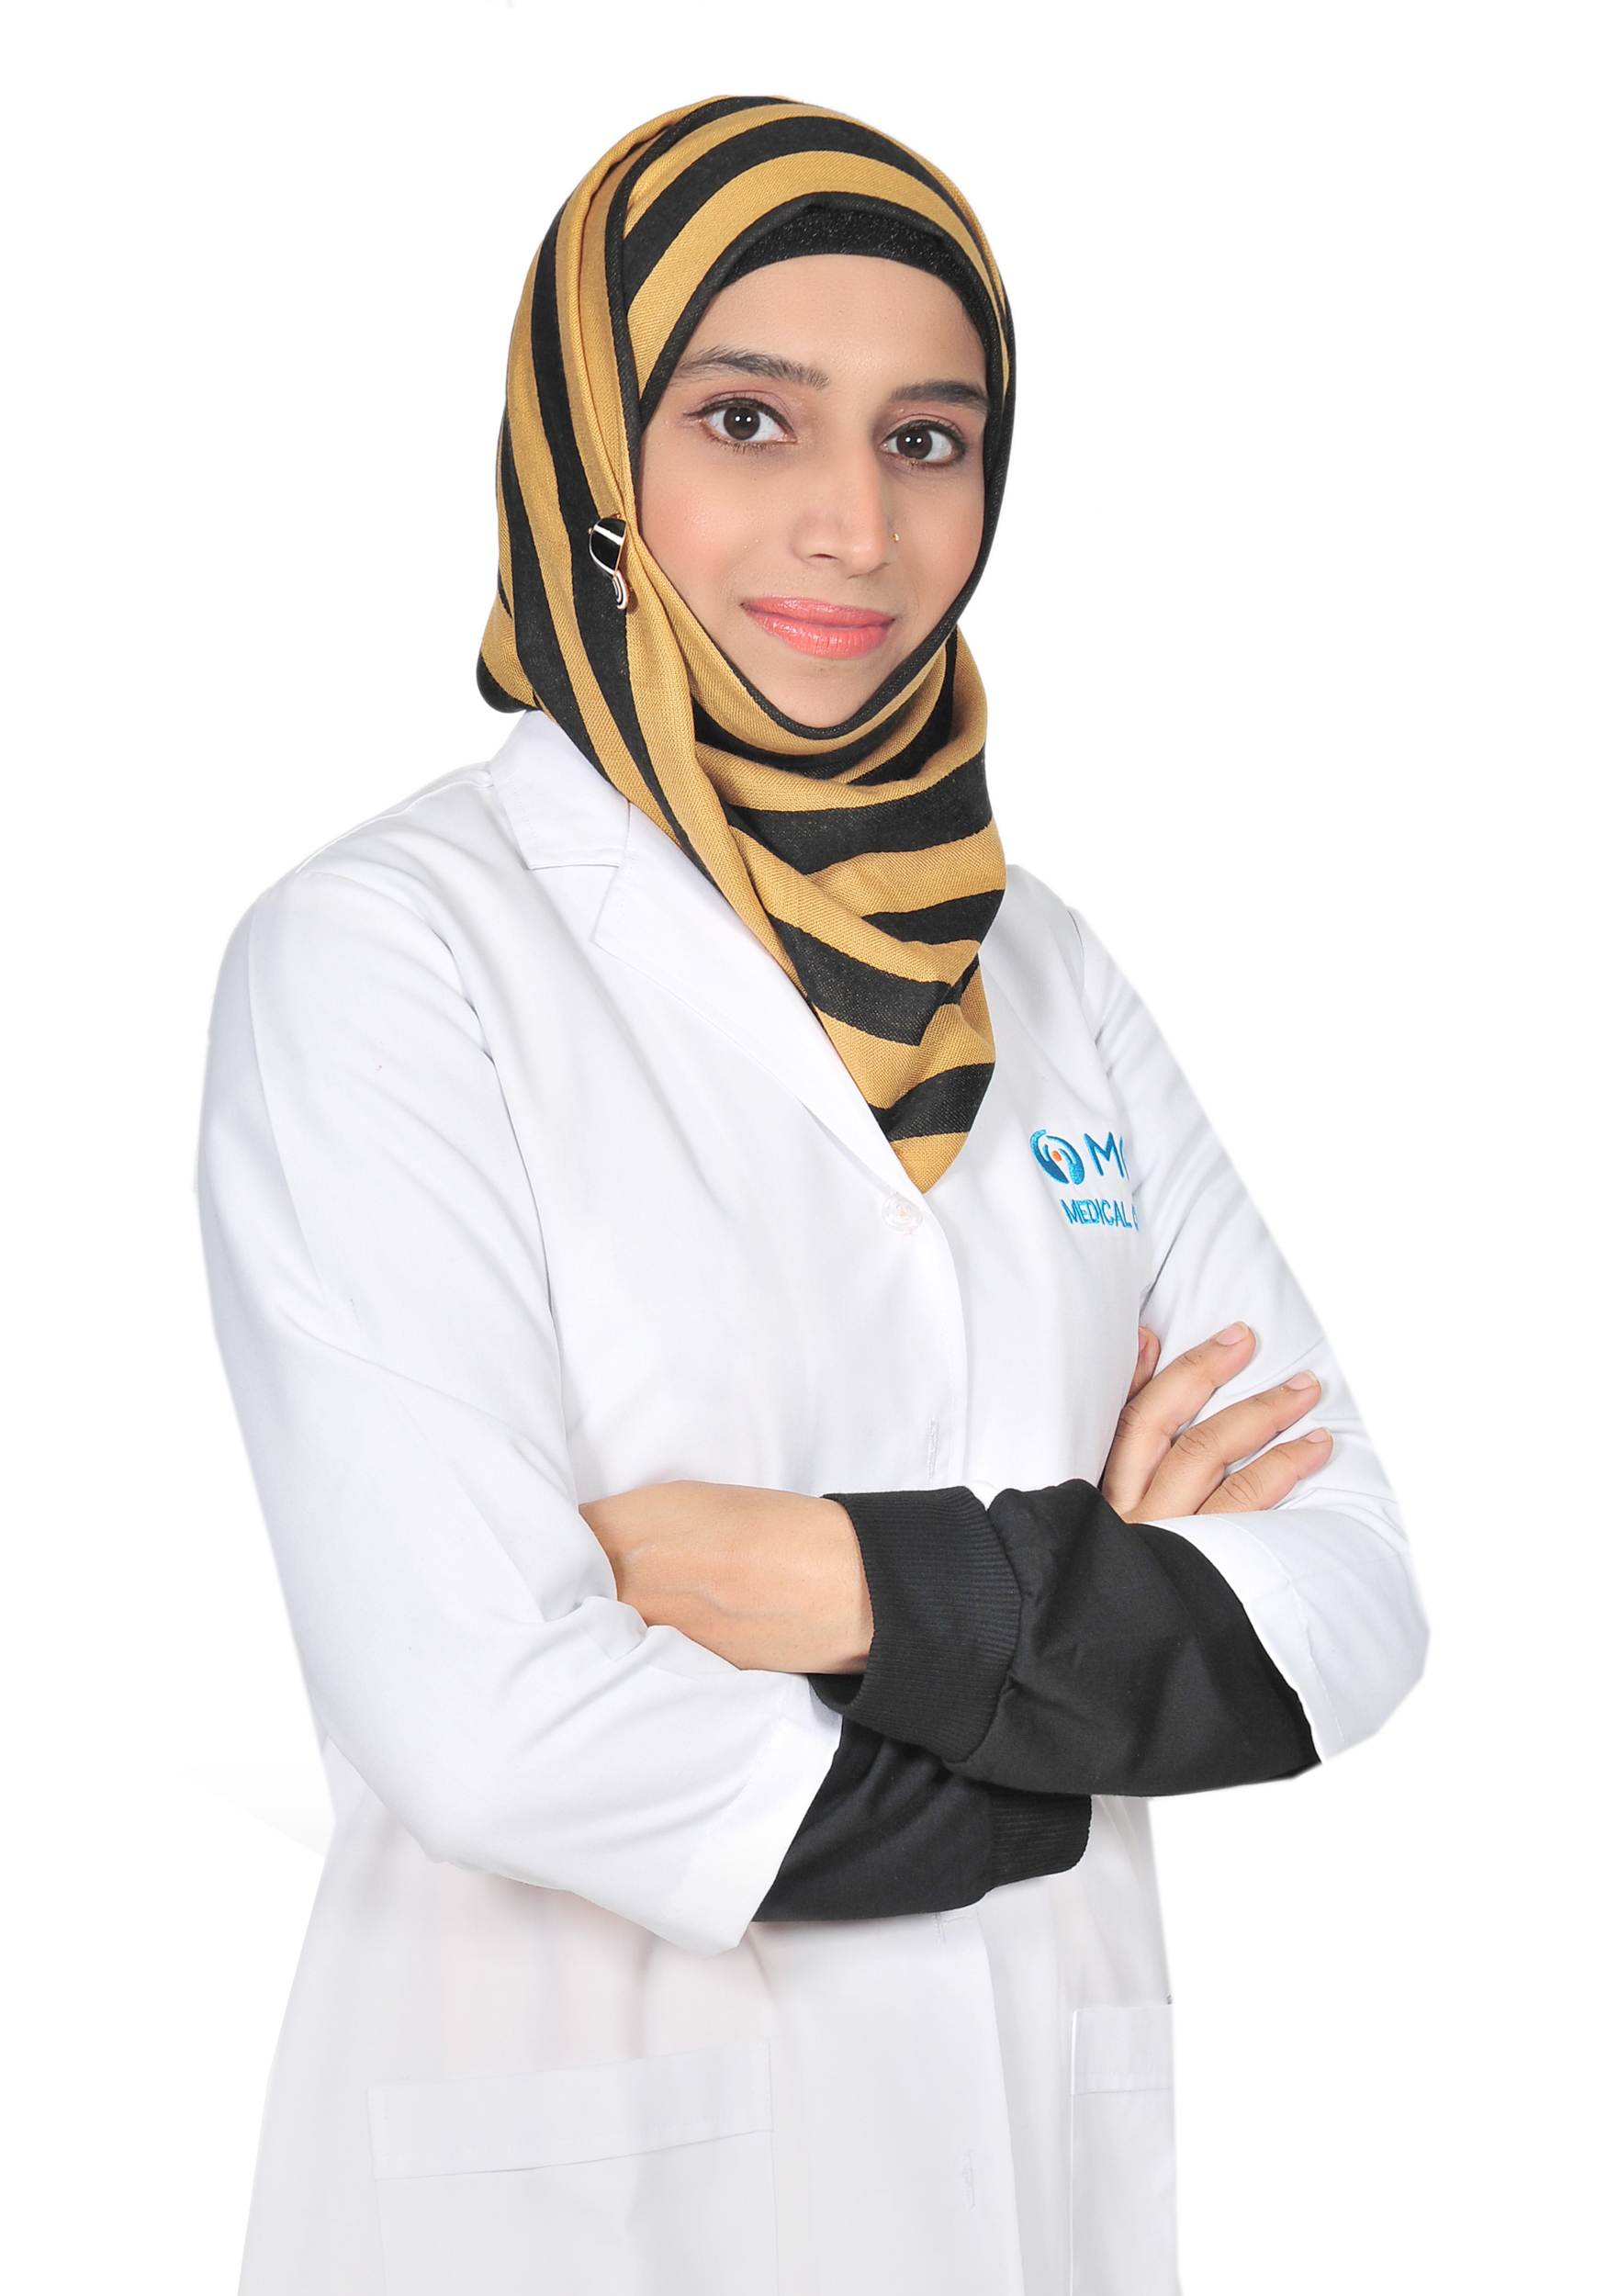 http://mgmmedical.ae/wp-content/uploads/2019/10/Dr-Syeda-Maria-profile-pic.jpg